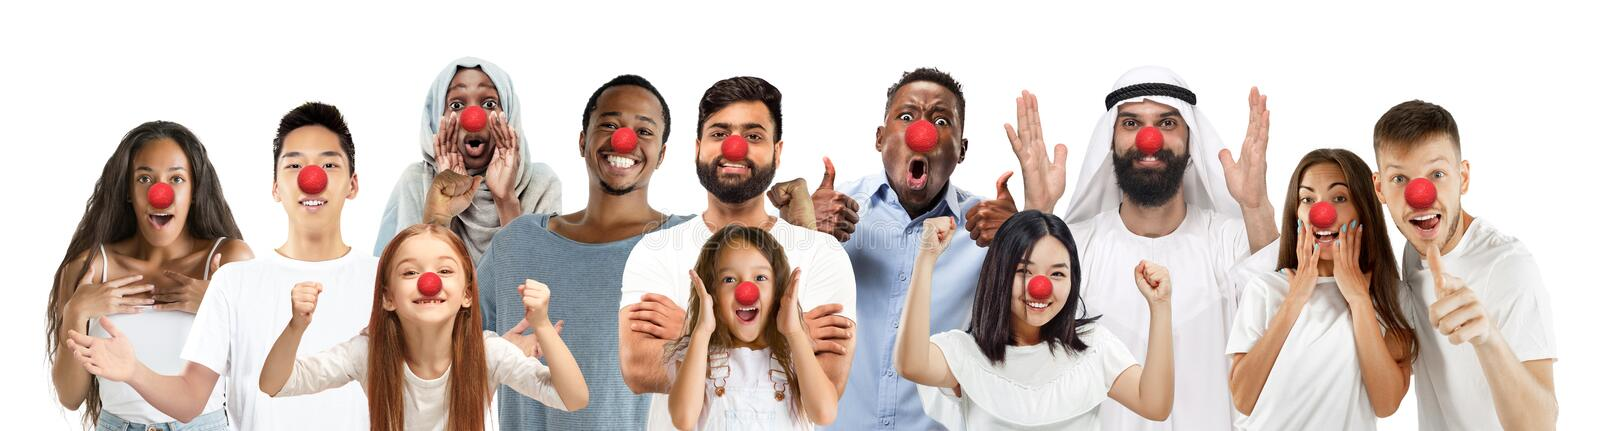 Portrait of young people celebrating red nose day on white background stock photos